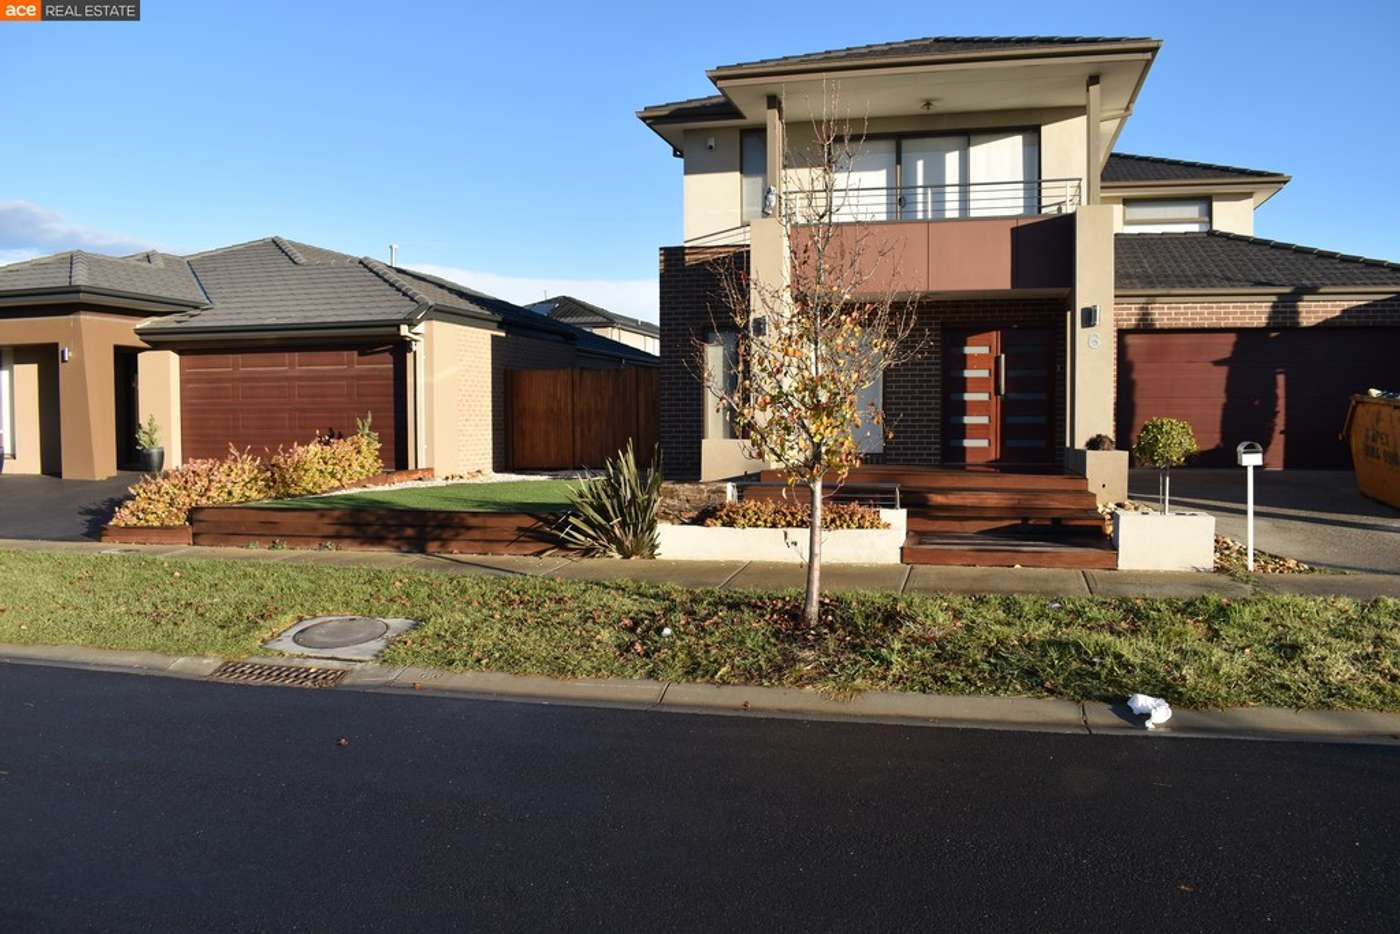 Main view of Homely house listing, 6 Maddock Street, Point Cook VIC 3030